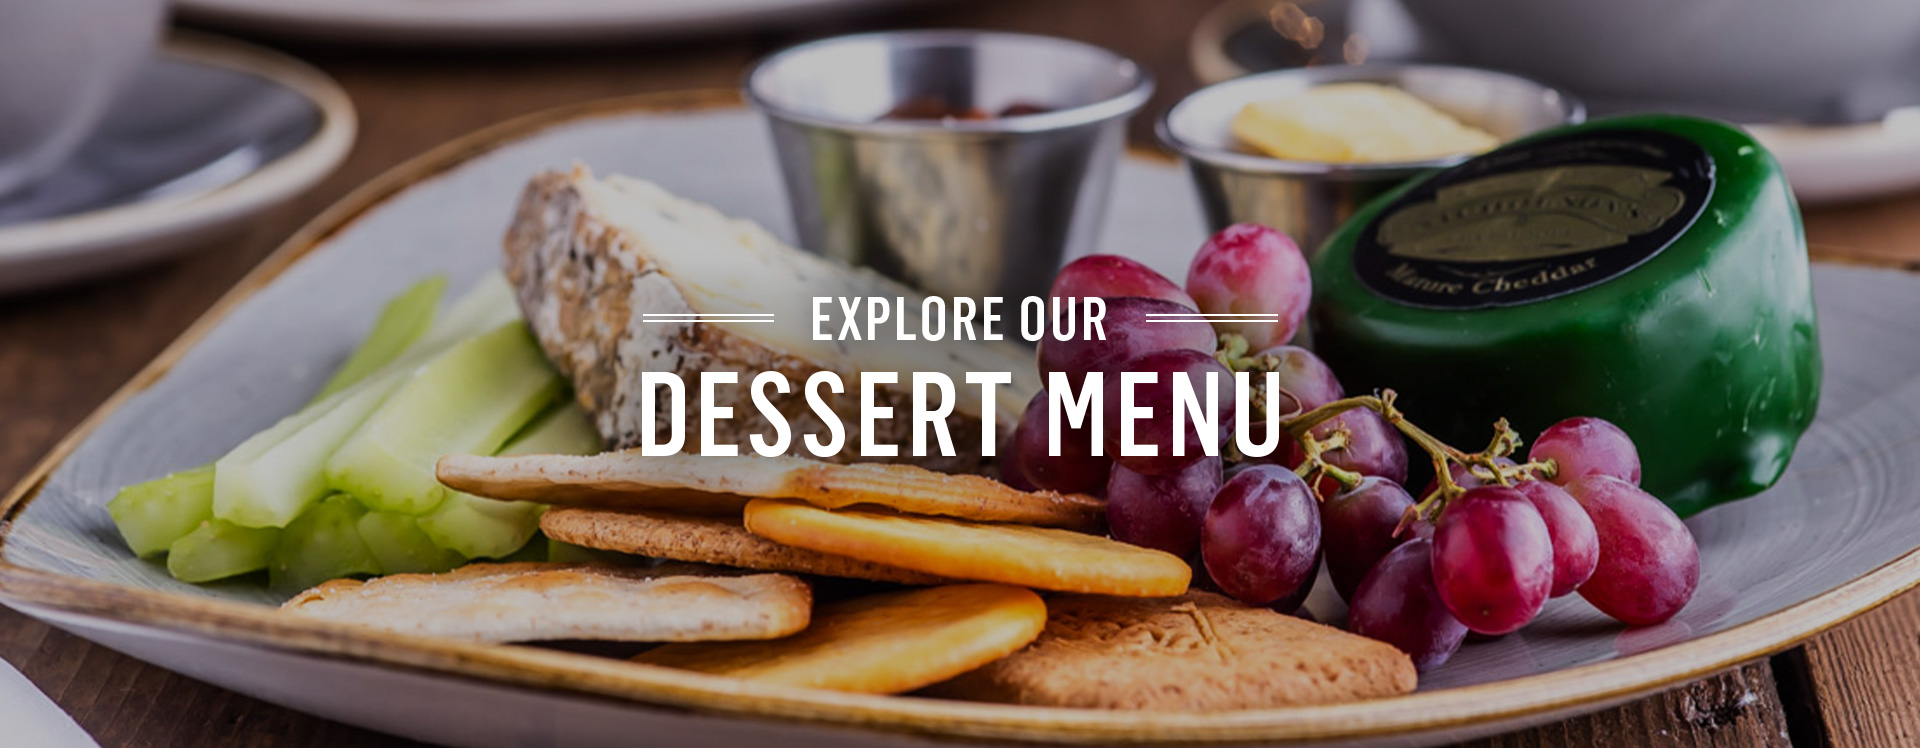 Dessert menu at The Bear and Staff - Book a table